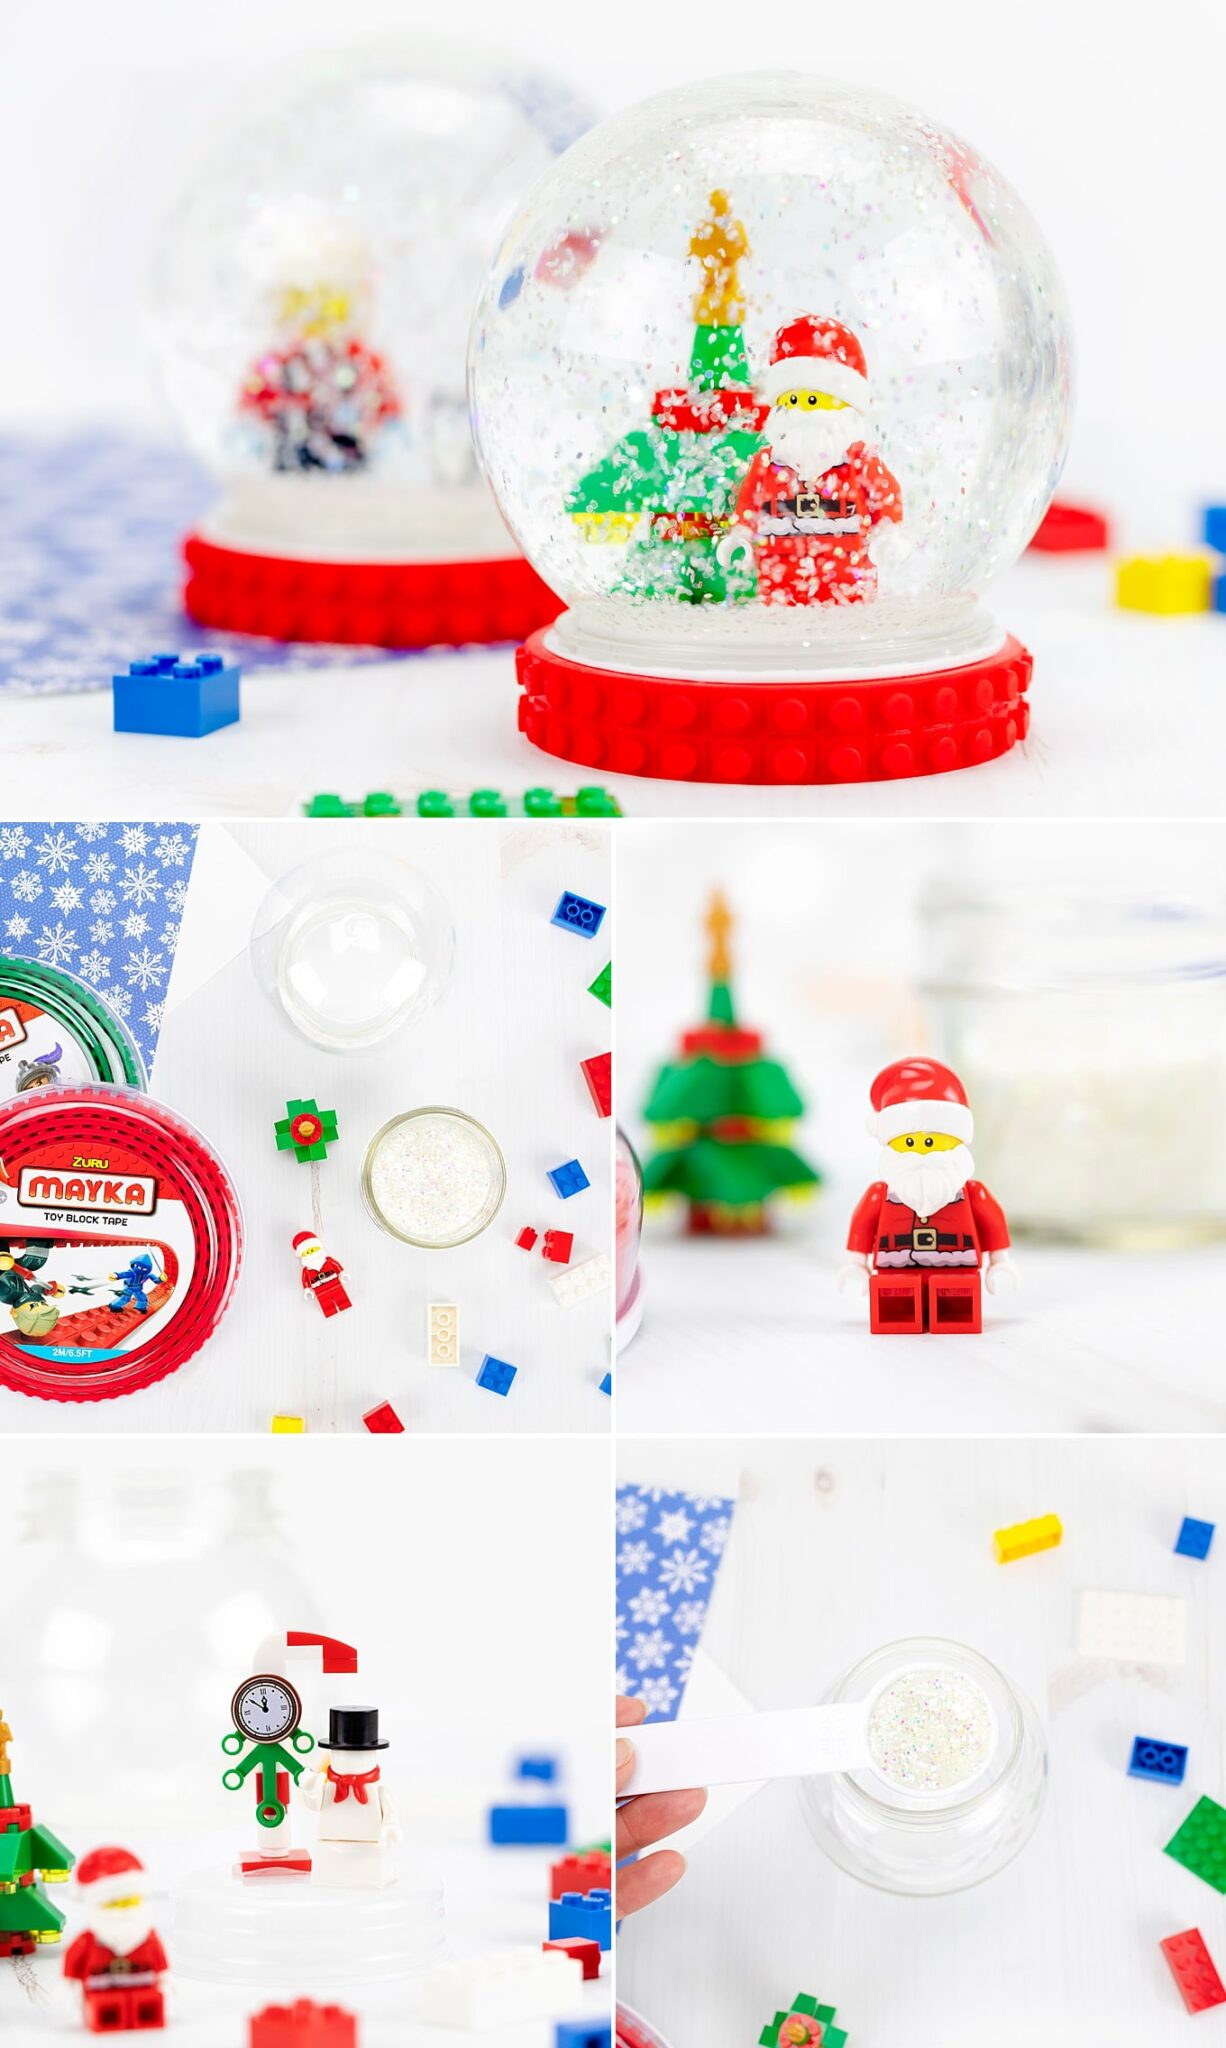 Snow globes are a winter wonderland in a jar! Learn how to make a fun DIY snow globe with this easy step-by-step tutorial and video. It's the perfect Christmas craft for kids and is an awesome homemade gift! #snowglobe #kids #christmas via @firefliesandmudpies